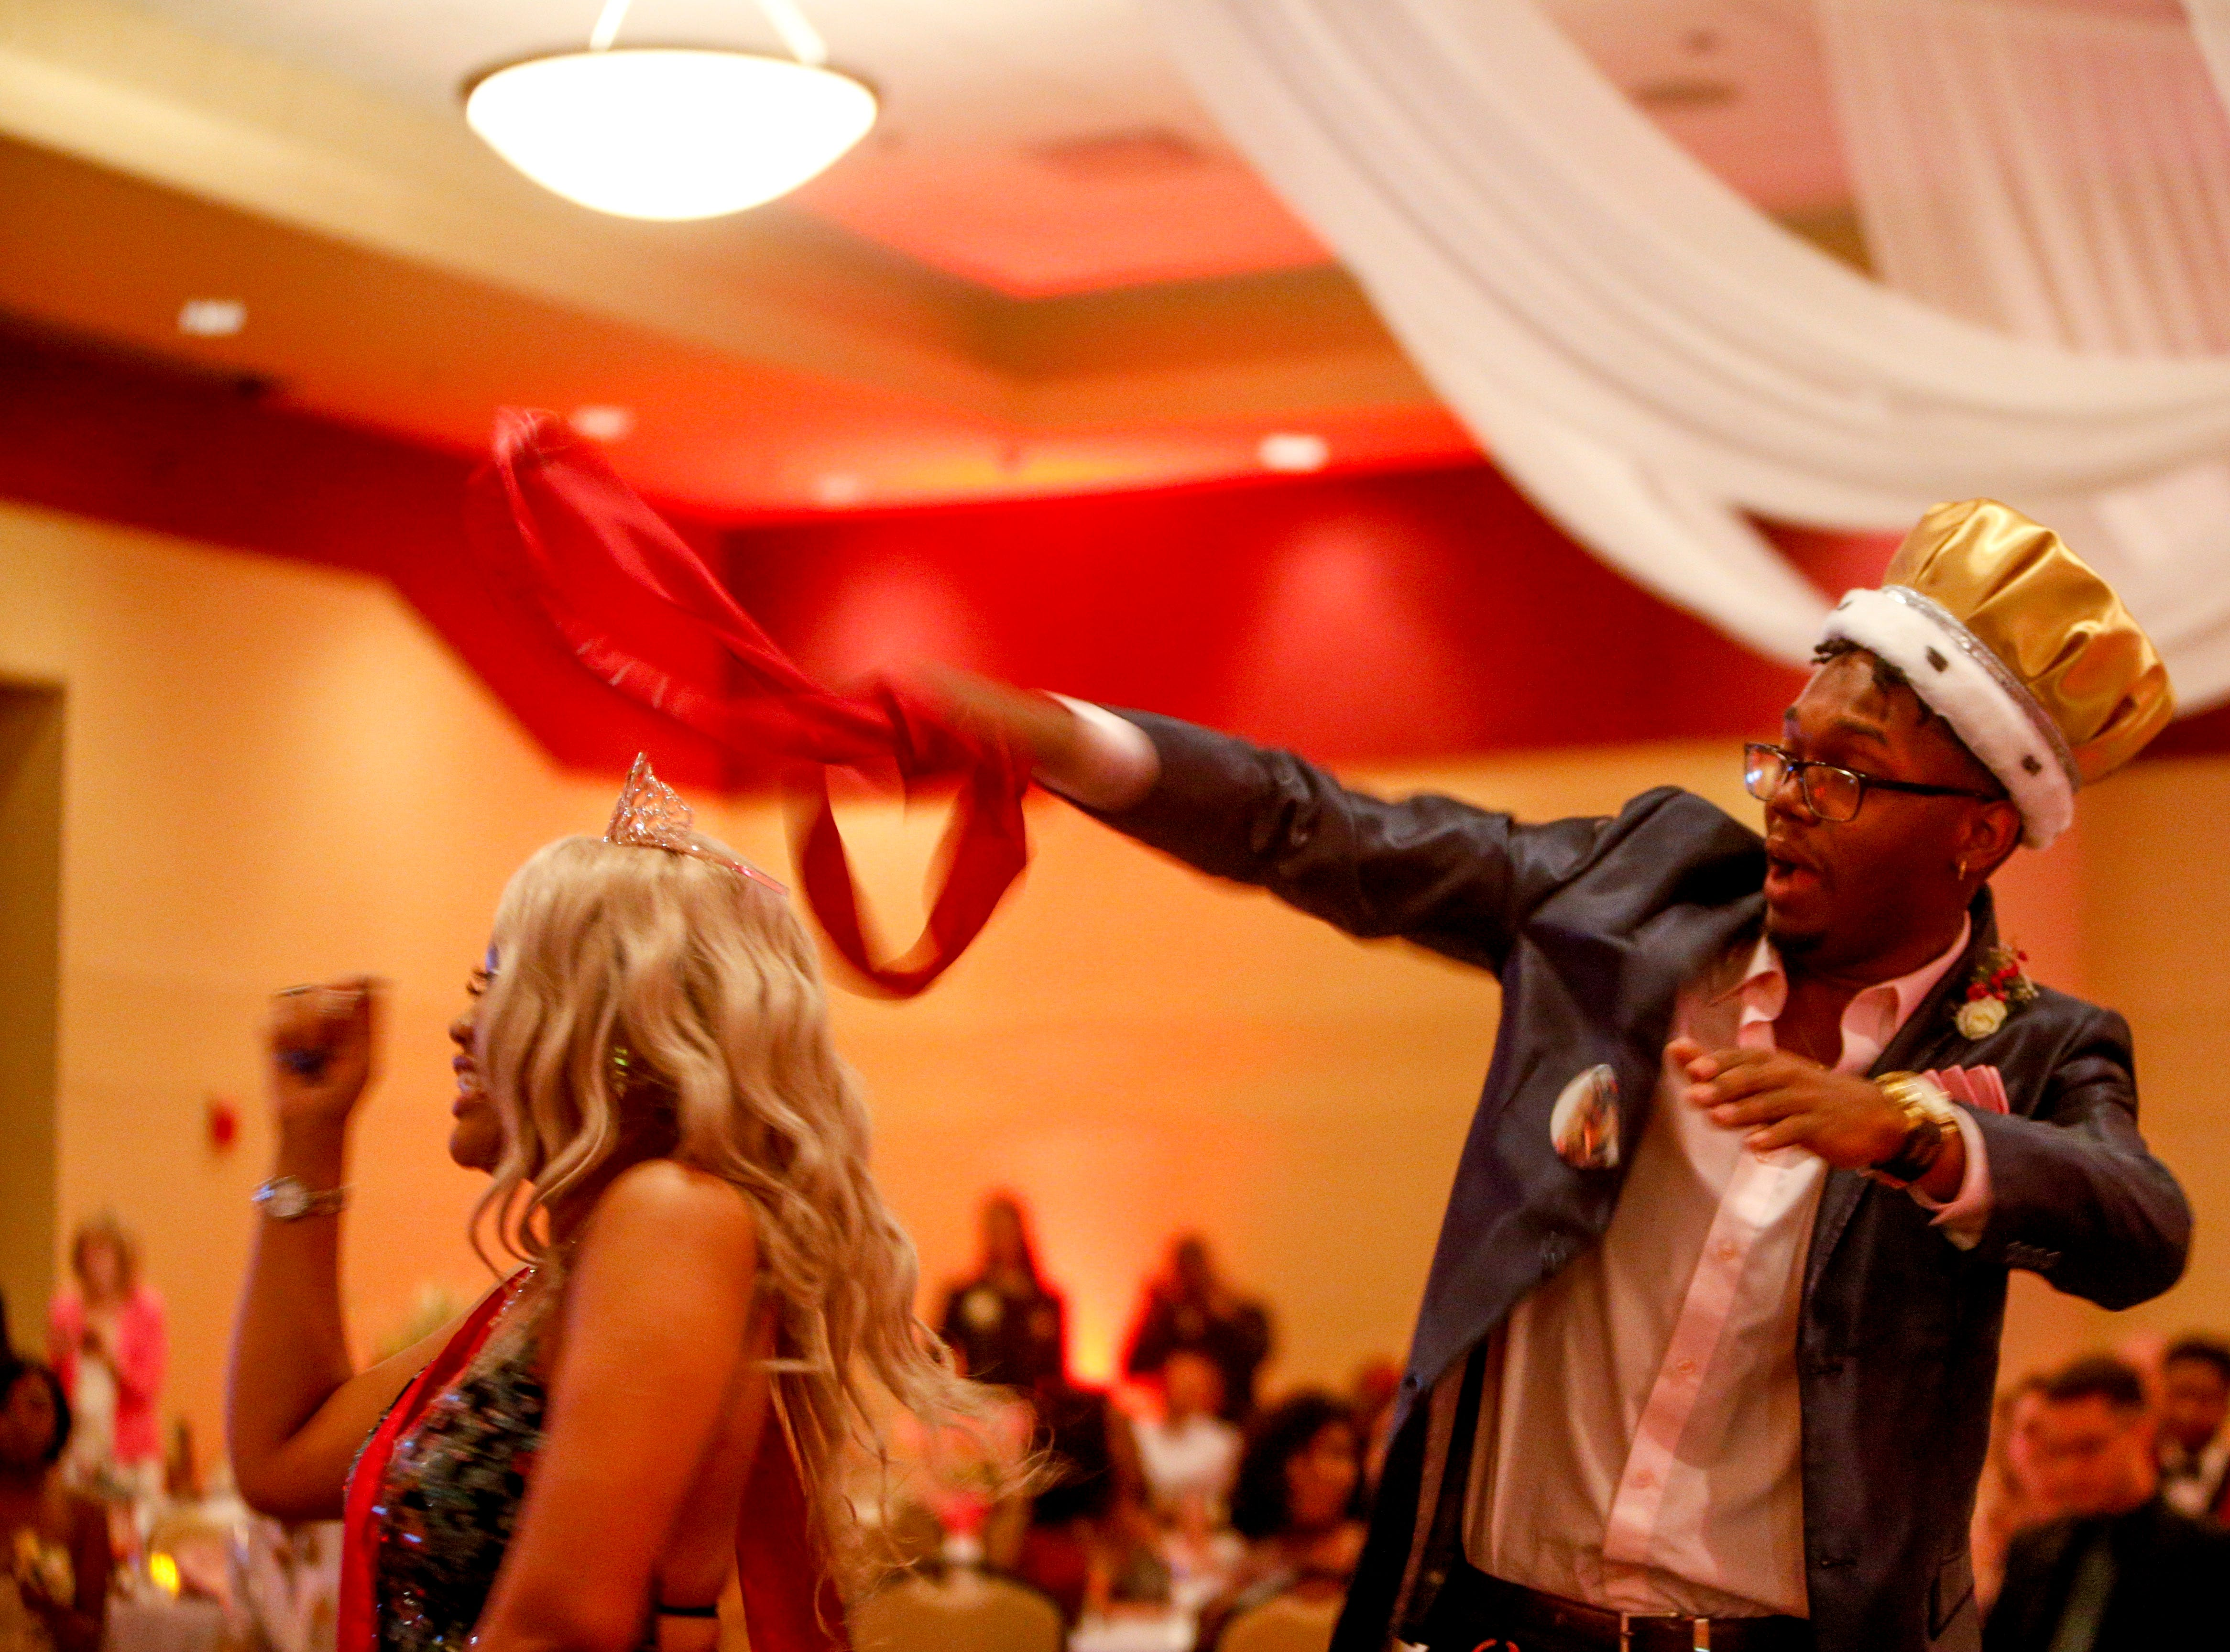 """Prom king Kaos Armstrong, right, uses his sash as a mock lasso while dancing with prom queen Adannis Delis-Luna, left, as hundreds of students from Kenwood High School celebrated their 2019 prom themed """"Cherish the Moment"""" at Valor Hall in Oak Grove, KY., on Saturday, May 4, 2019."""